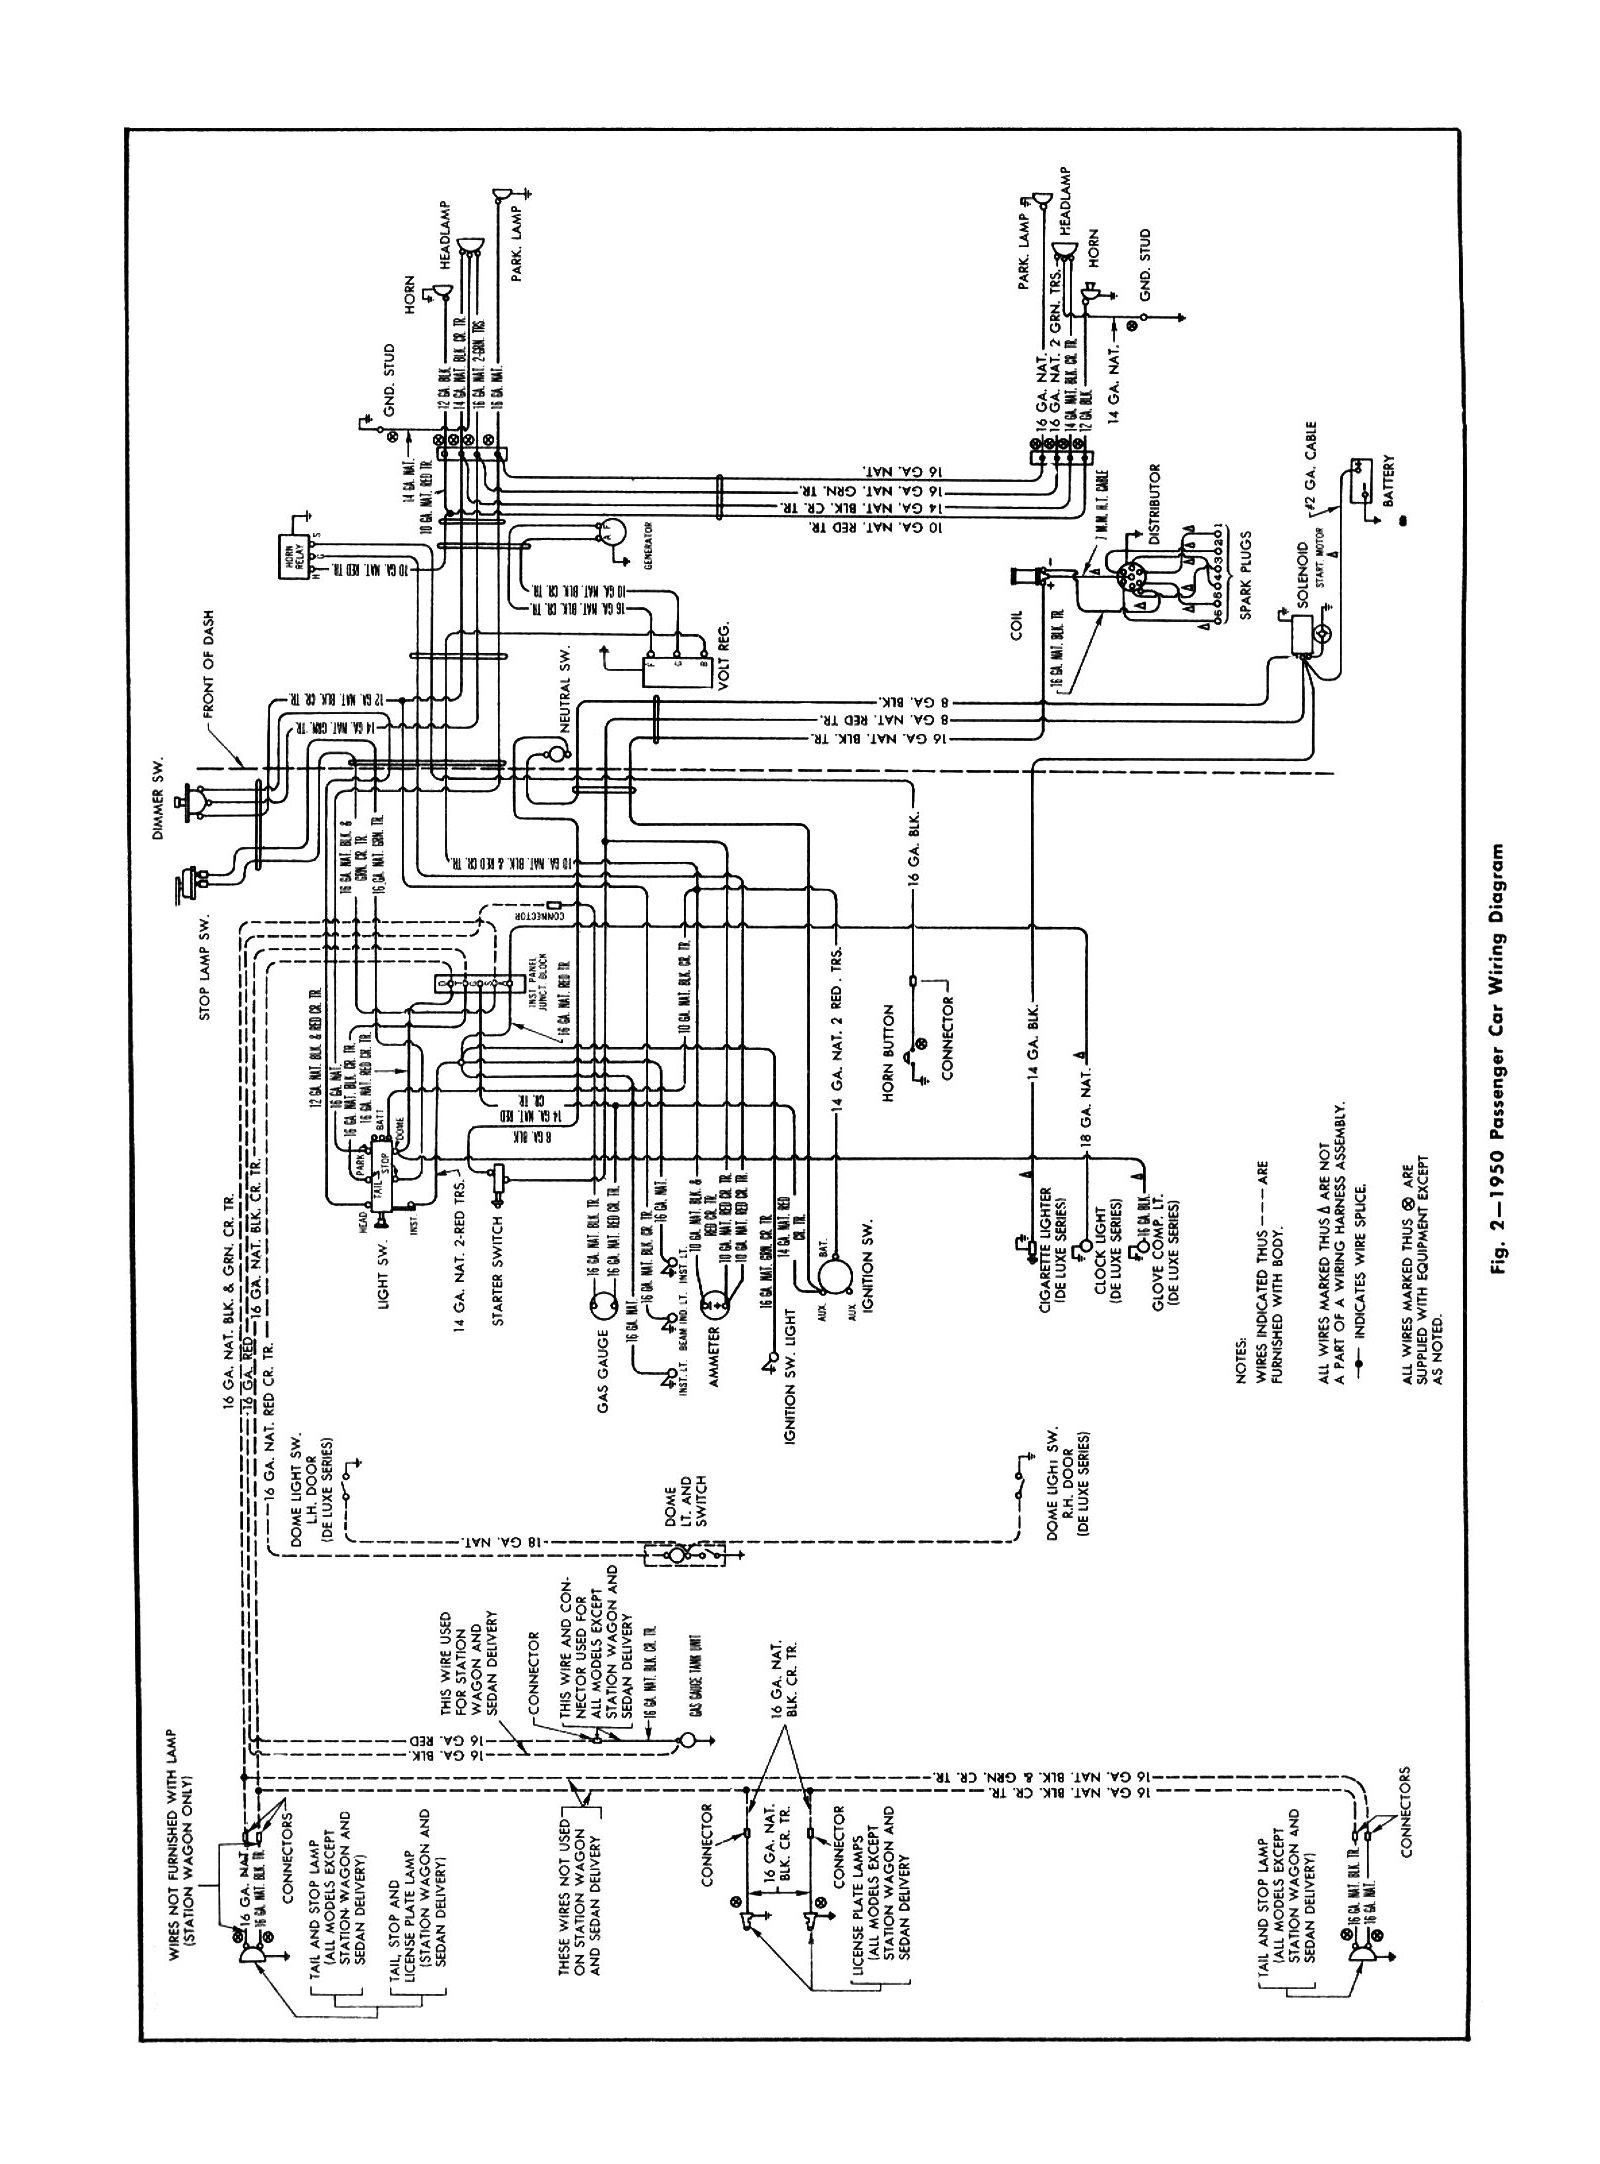 Residential Wiring Diagram And Schematic